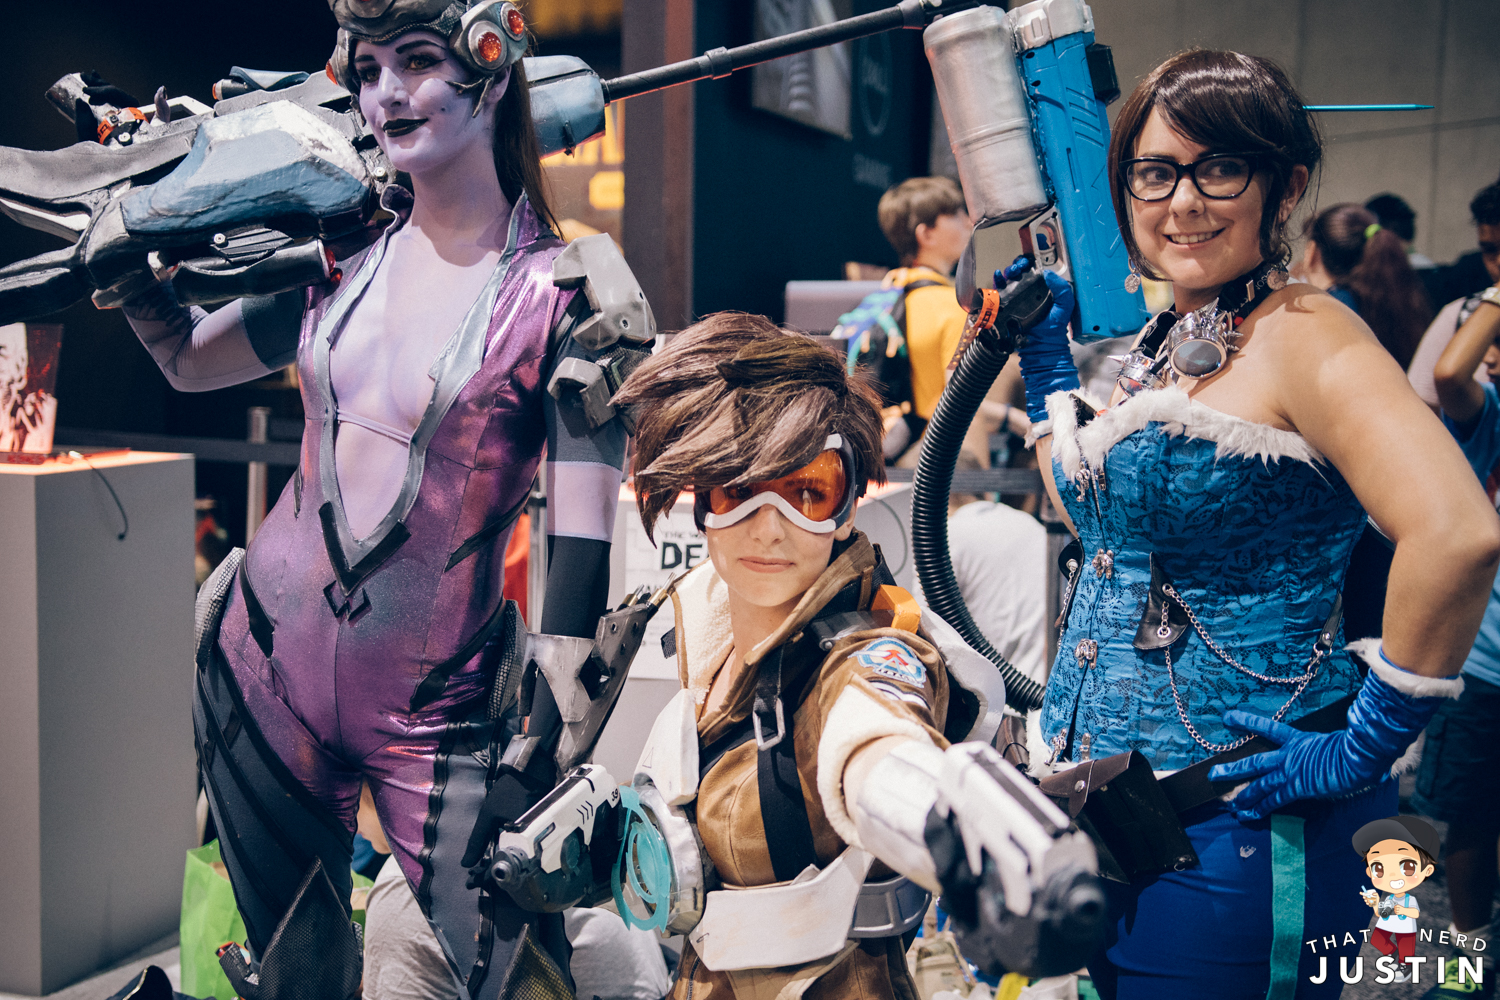 Widowmaker, Tracer, and Mei cosplayers near the Blizzard booth.